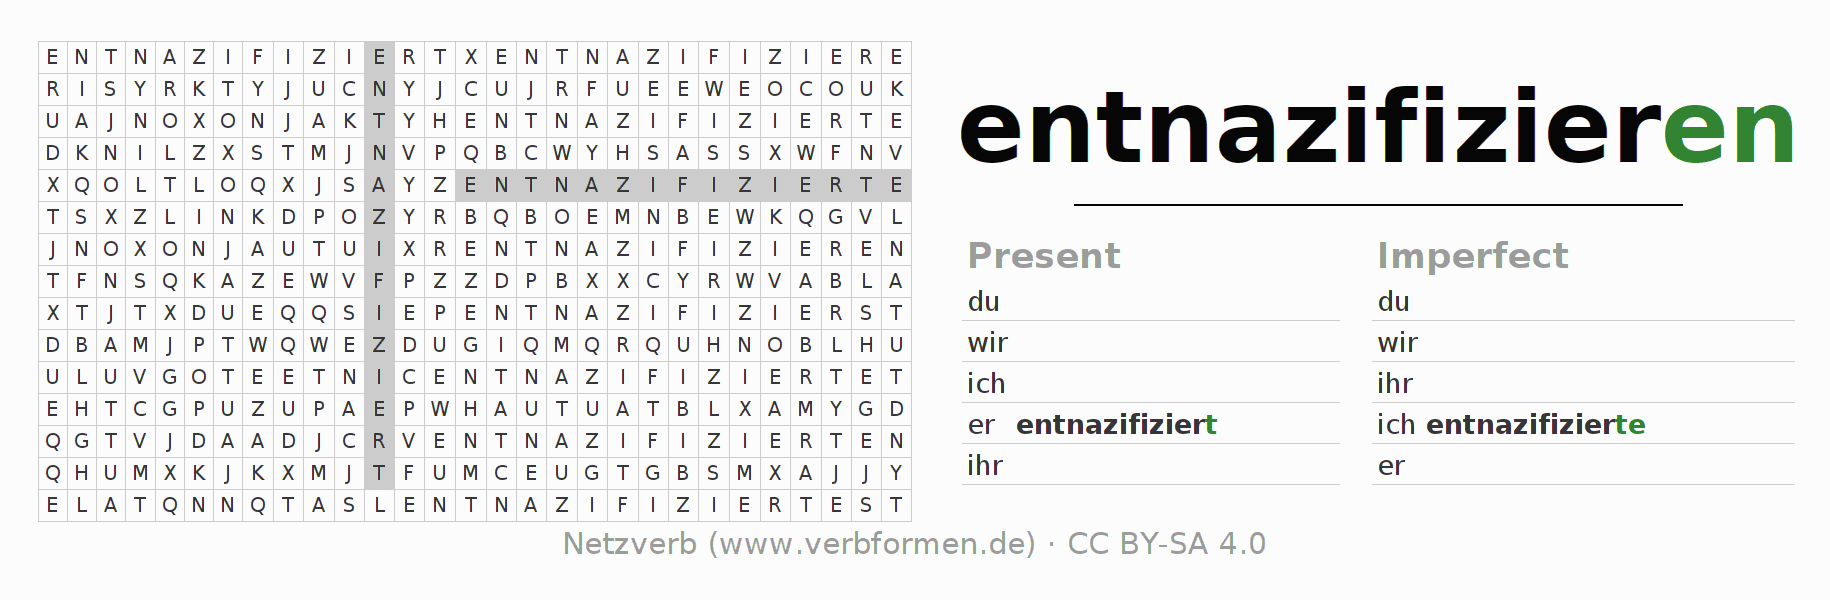 Word search puzzle for the conjugation of the verb entnazifizieren